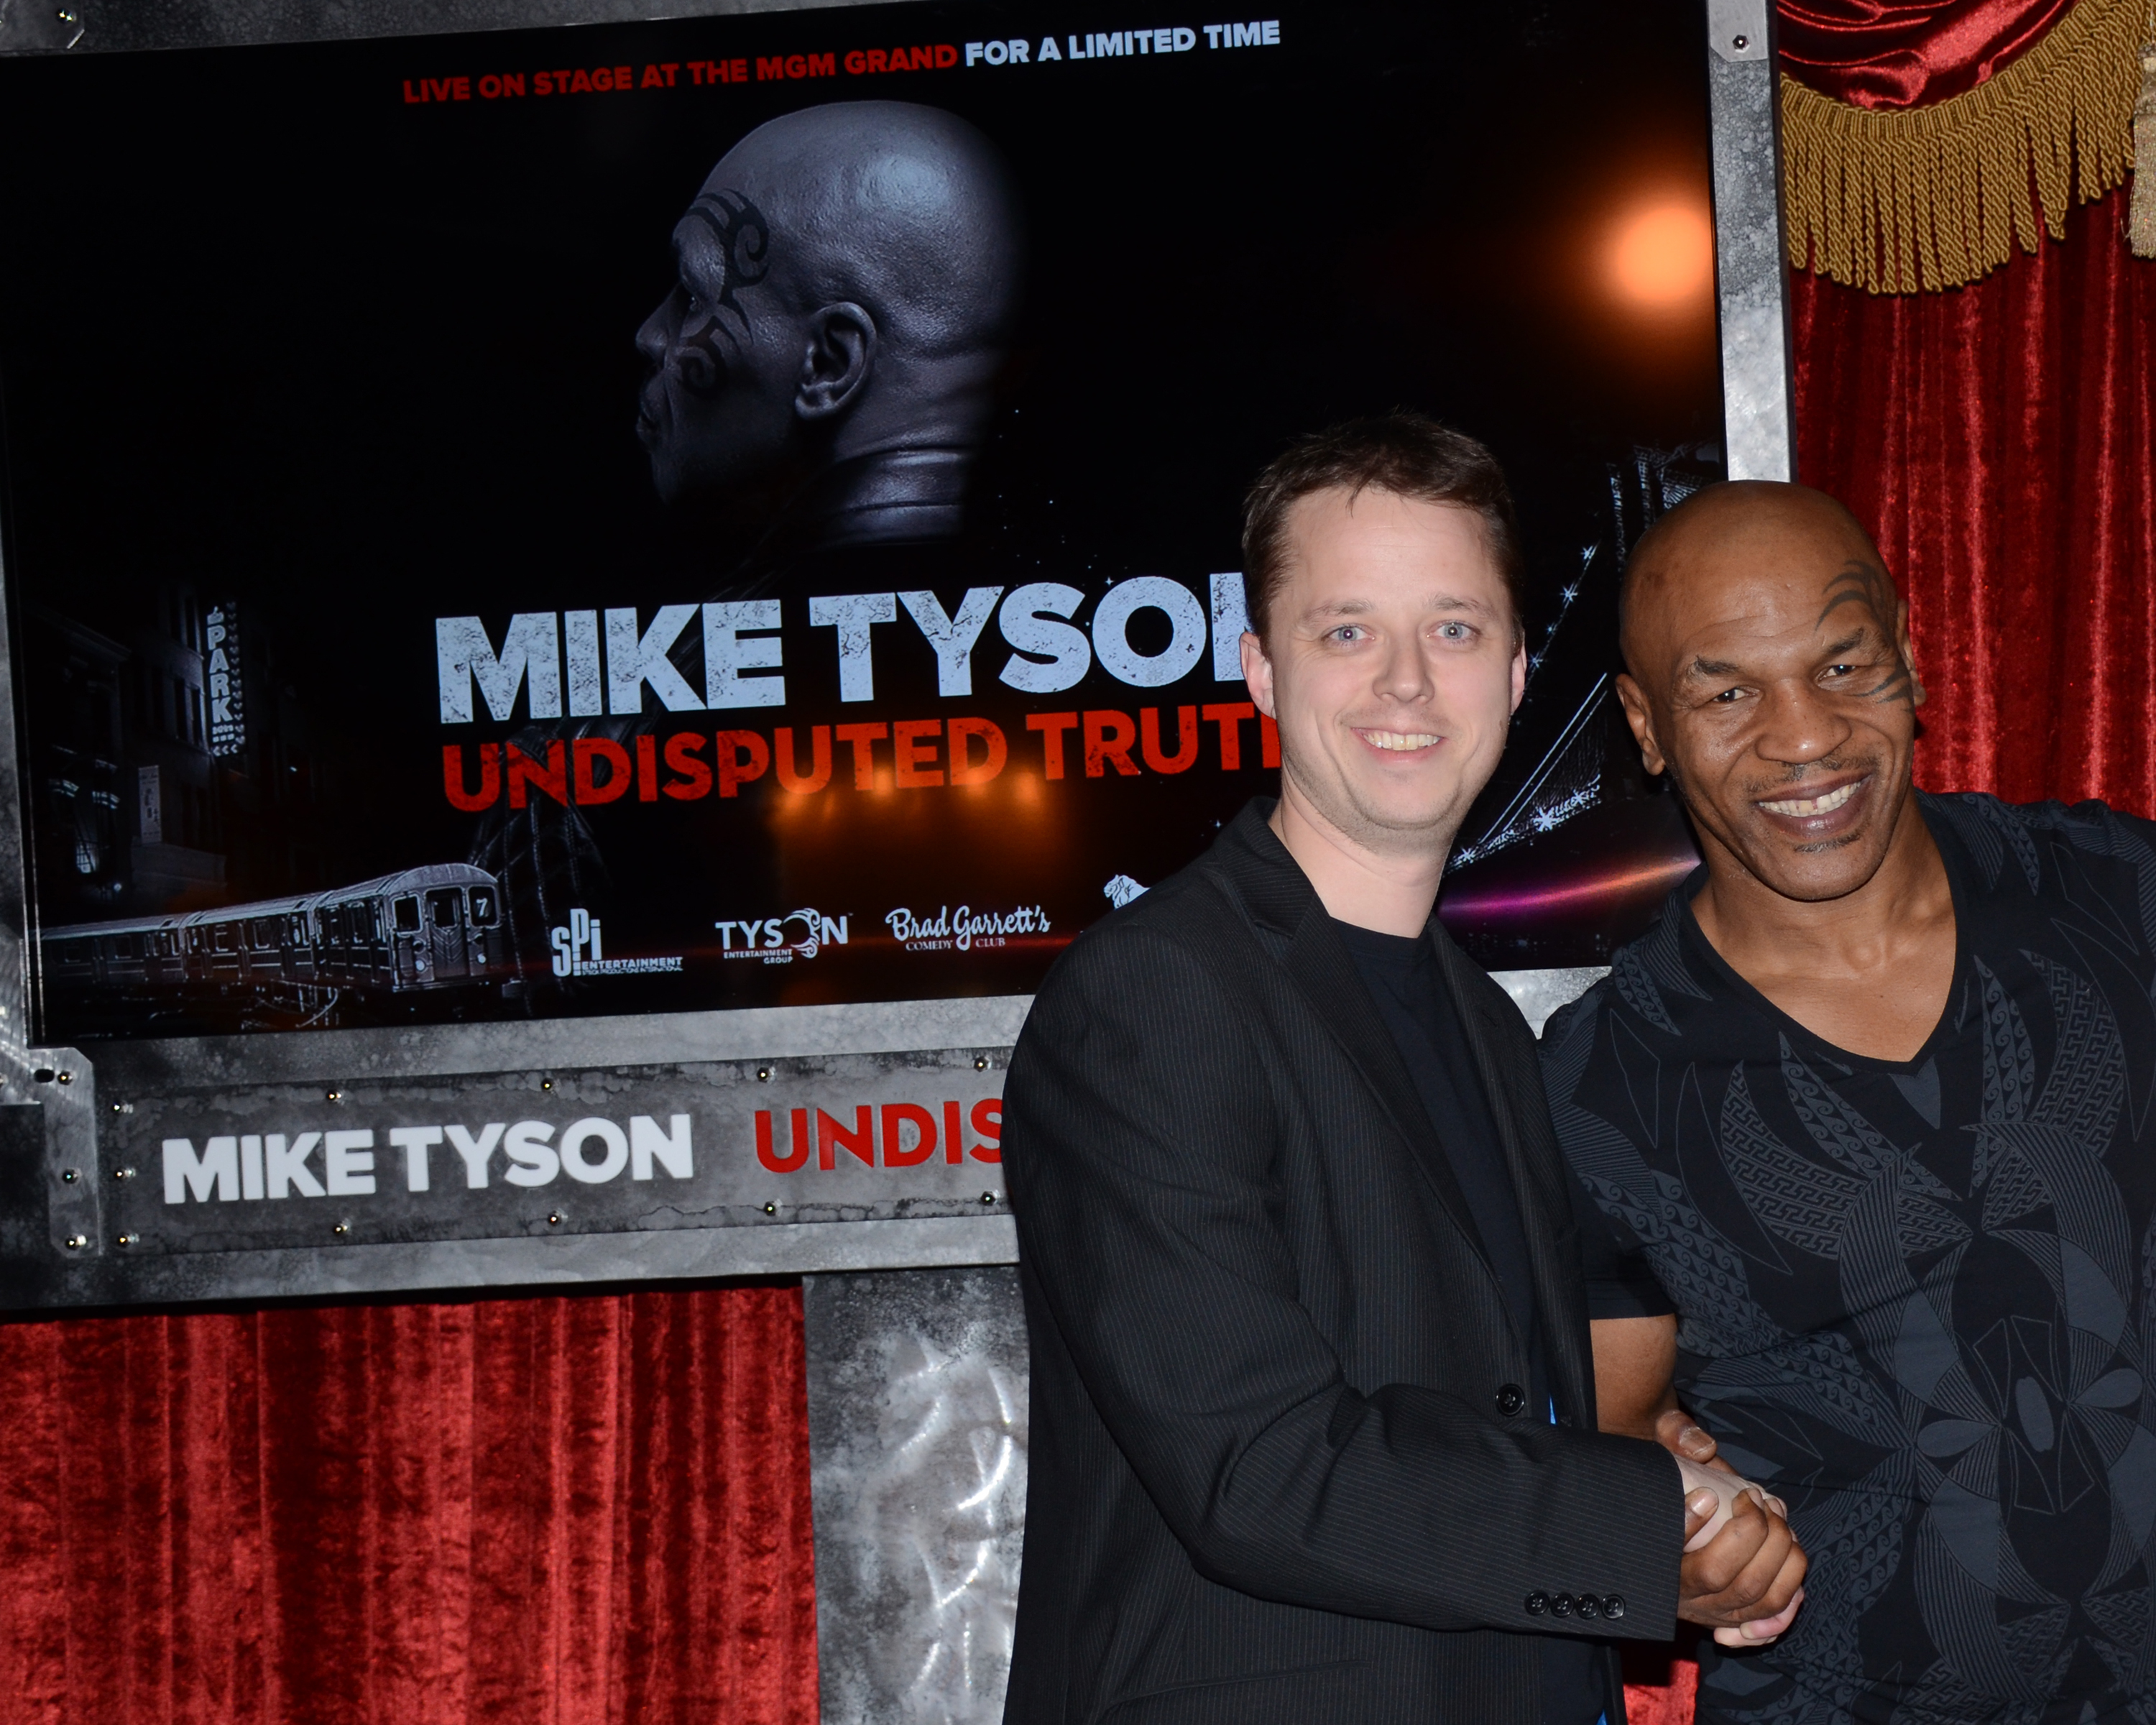 Mike Tyson Undisputed Truth Illusion Projects Inc